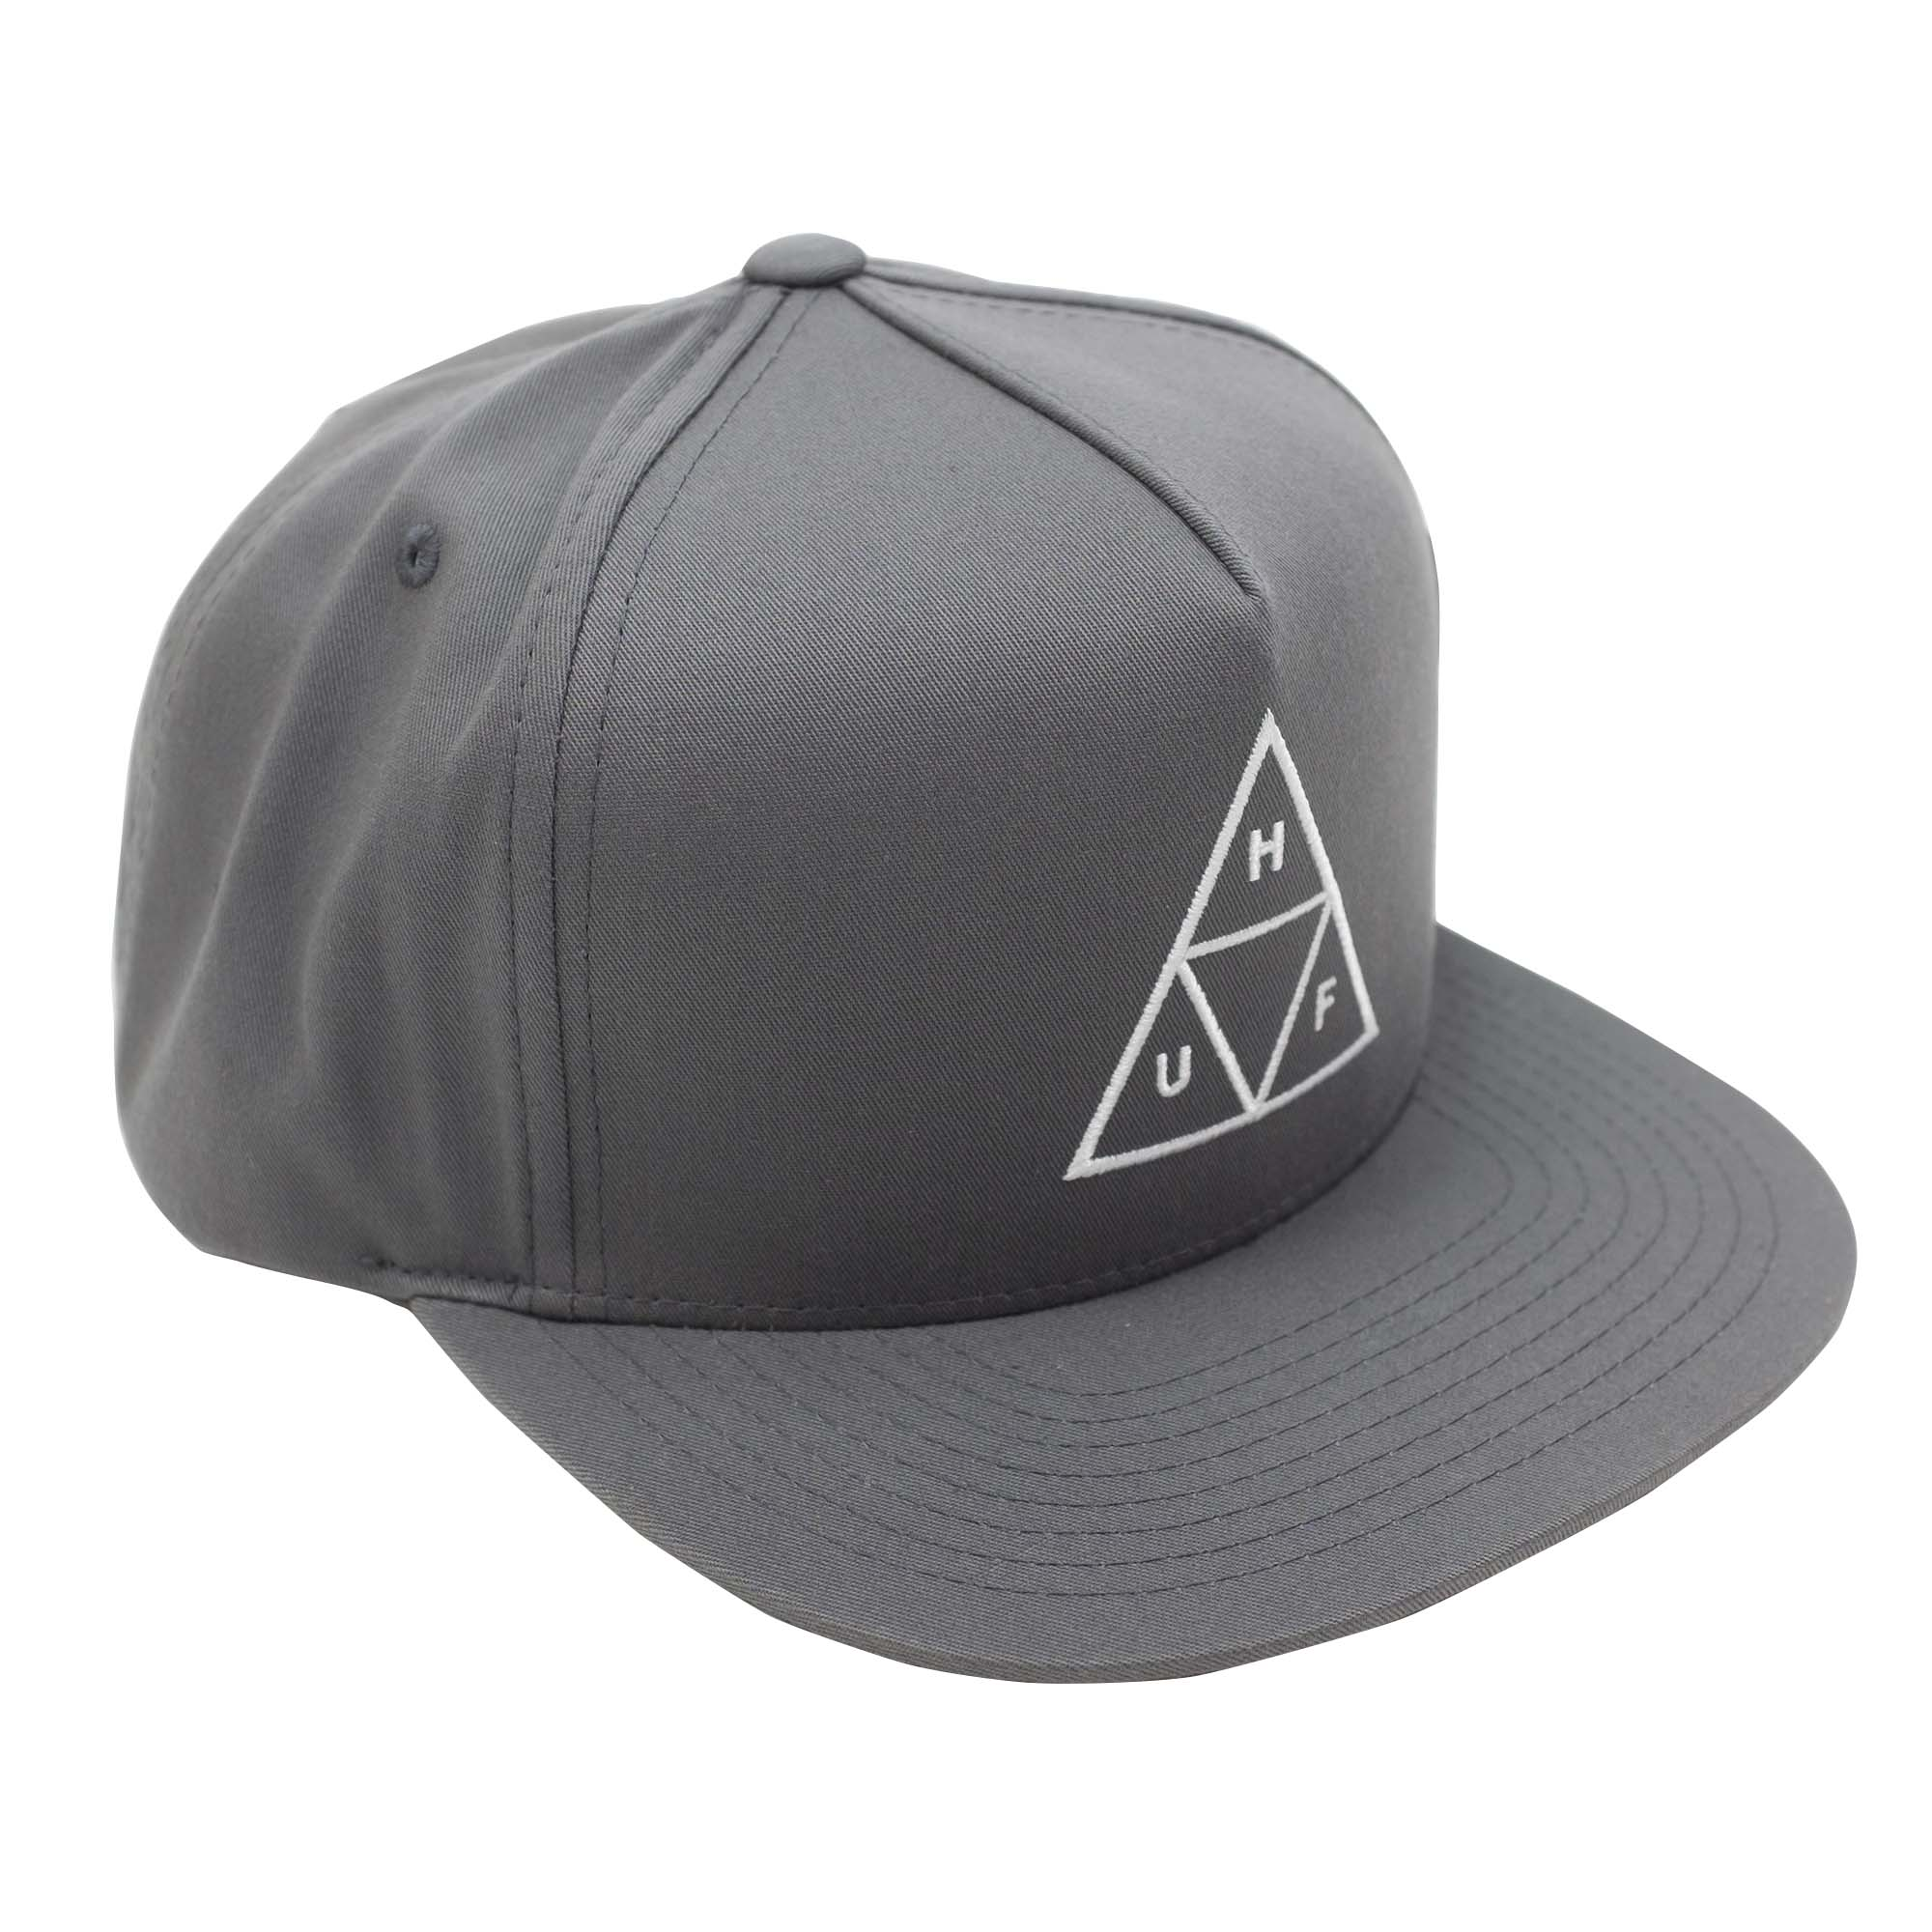 HUF Essentials Tt Snapback Hat - Charcoal